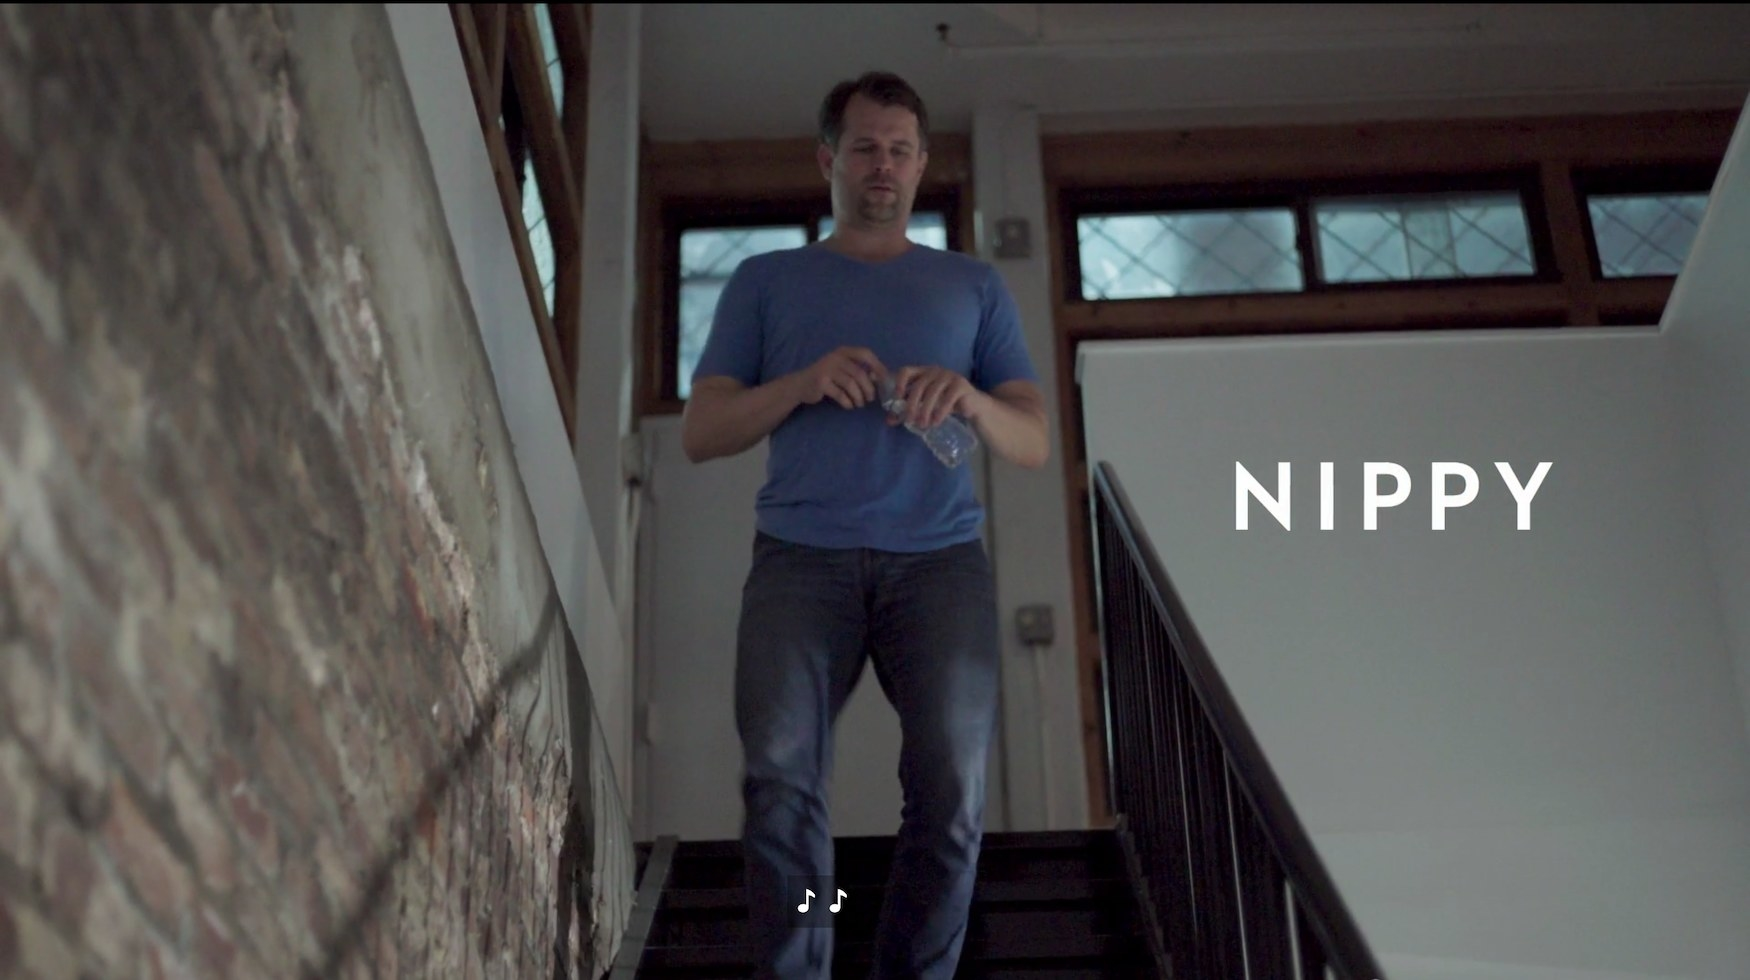 A screenshot of a man in walking downstairs with a title card identifying him as Nippy